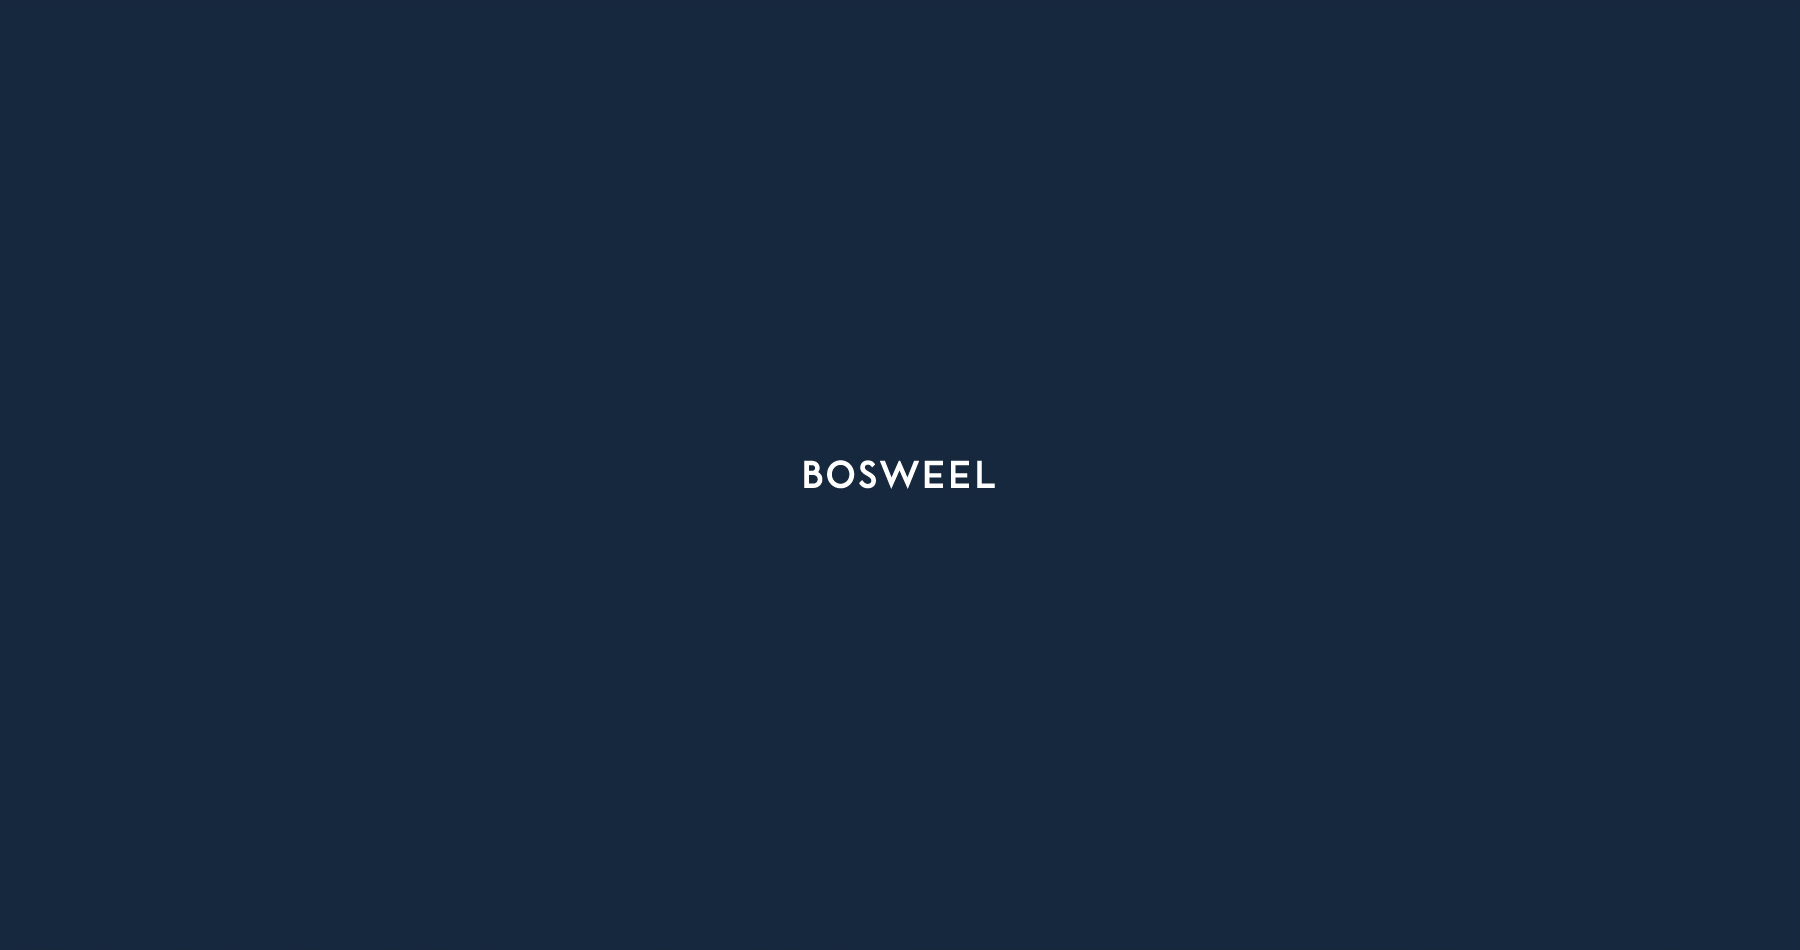 Case_Boswell_010